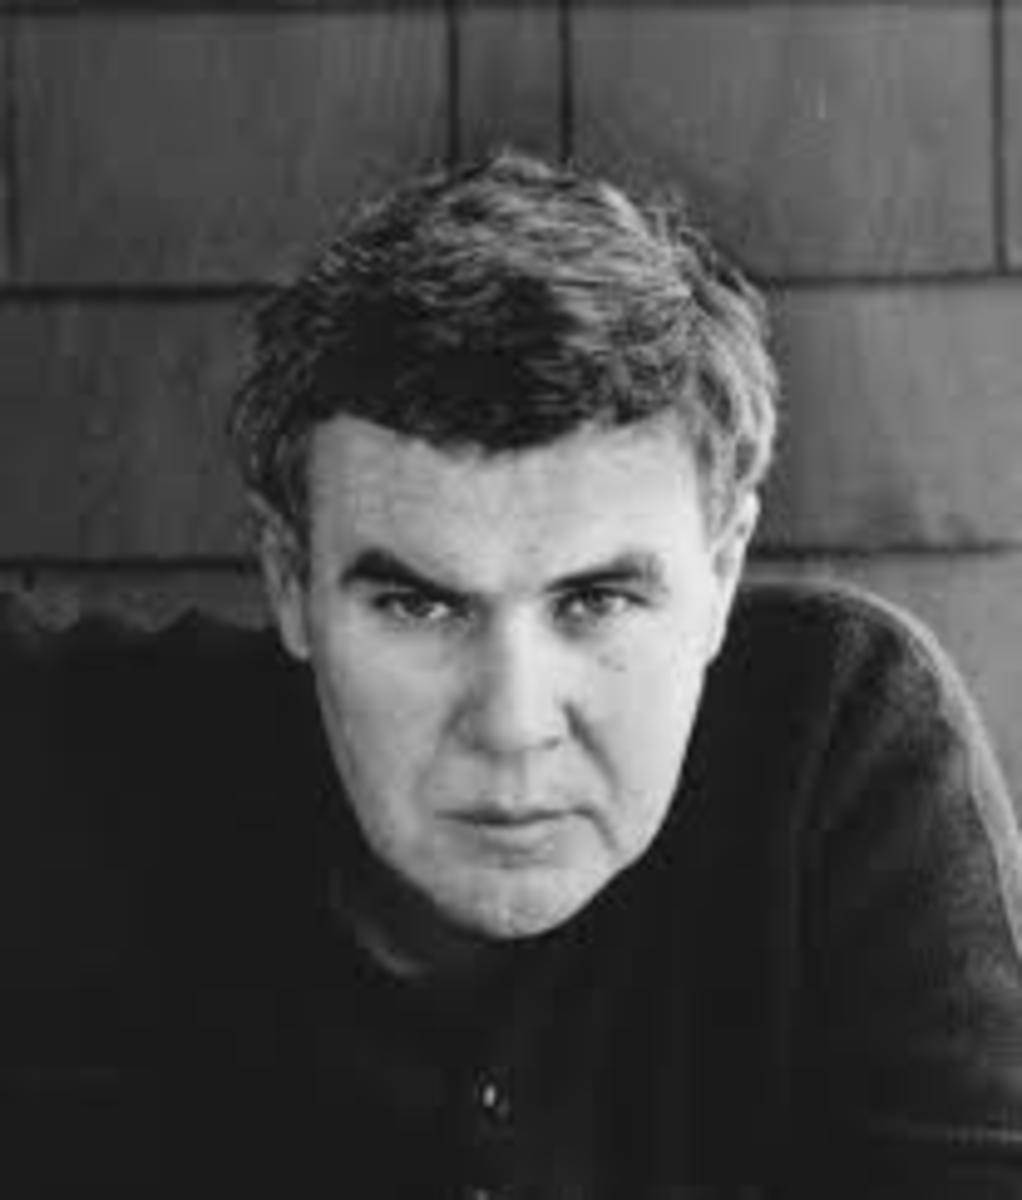 the absence of understanding in seeing in cathedral a short story by raymond carver Cathedral raymond carver cathedral is a short story about an unnamed man who reaches a him or effectively understanding people for who they are beneath the.